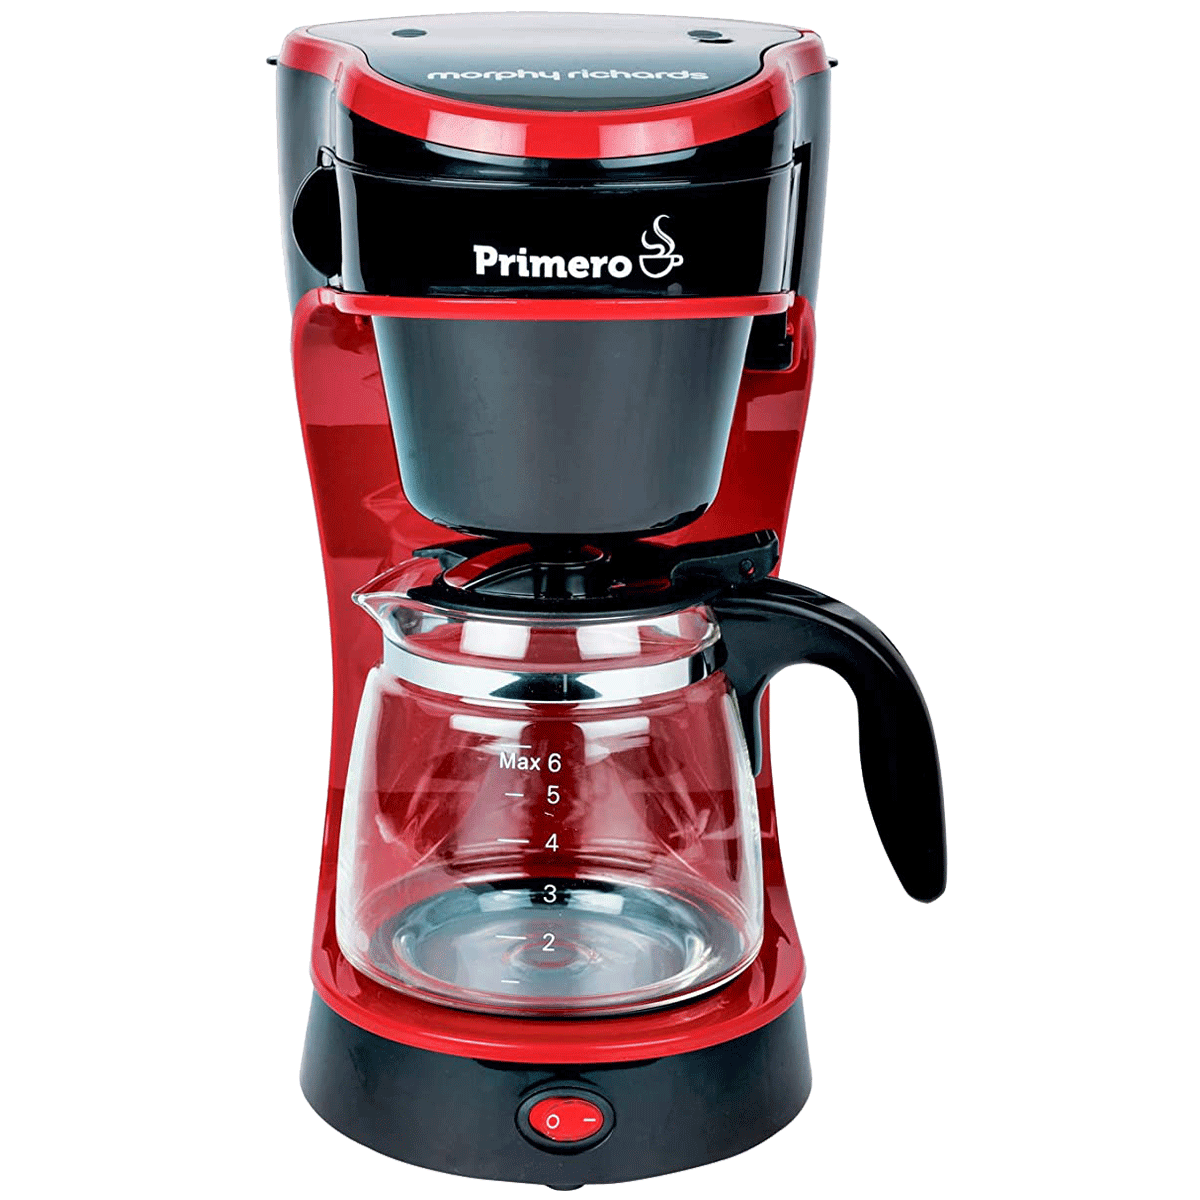 Morphy Richards Primero 6 Cup Semi-Automatic Drip Coffee Maker (Makes Drip Coffee, Anti Drip Function, 350010, Black/Red)